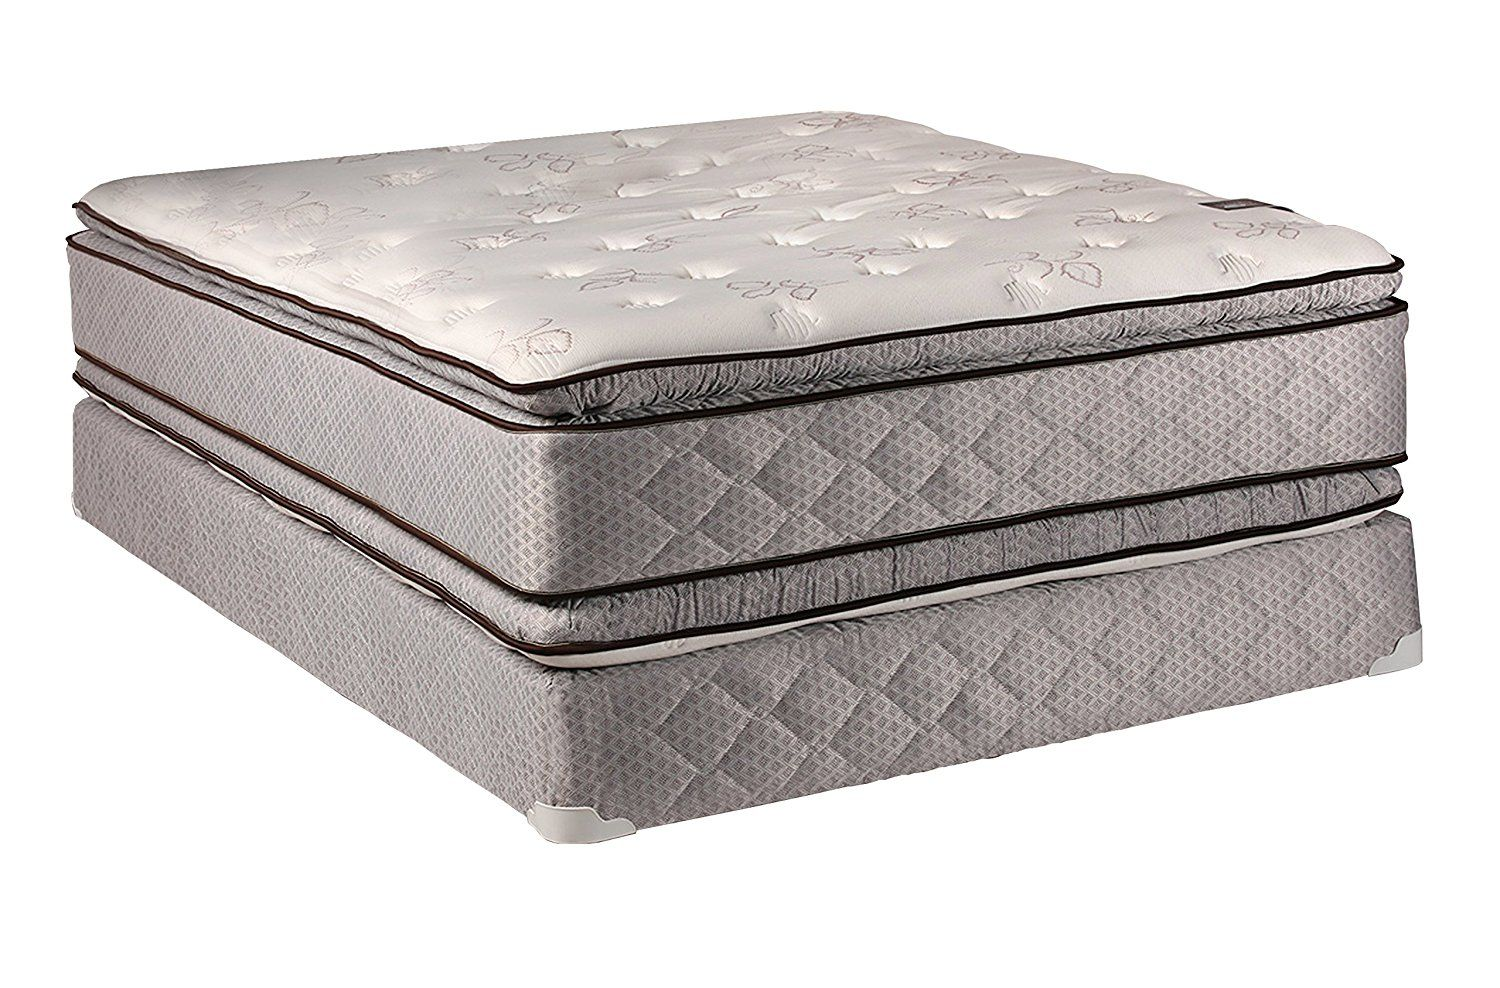 comfort double sided pillowtop queen size mattress and box spring